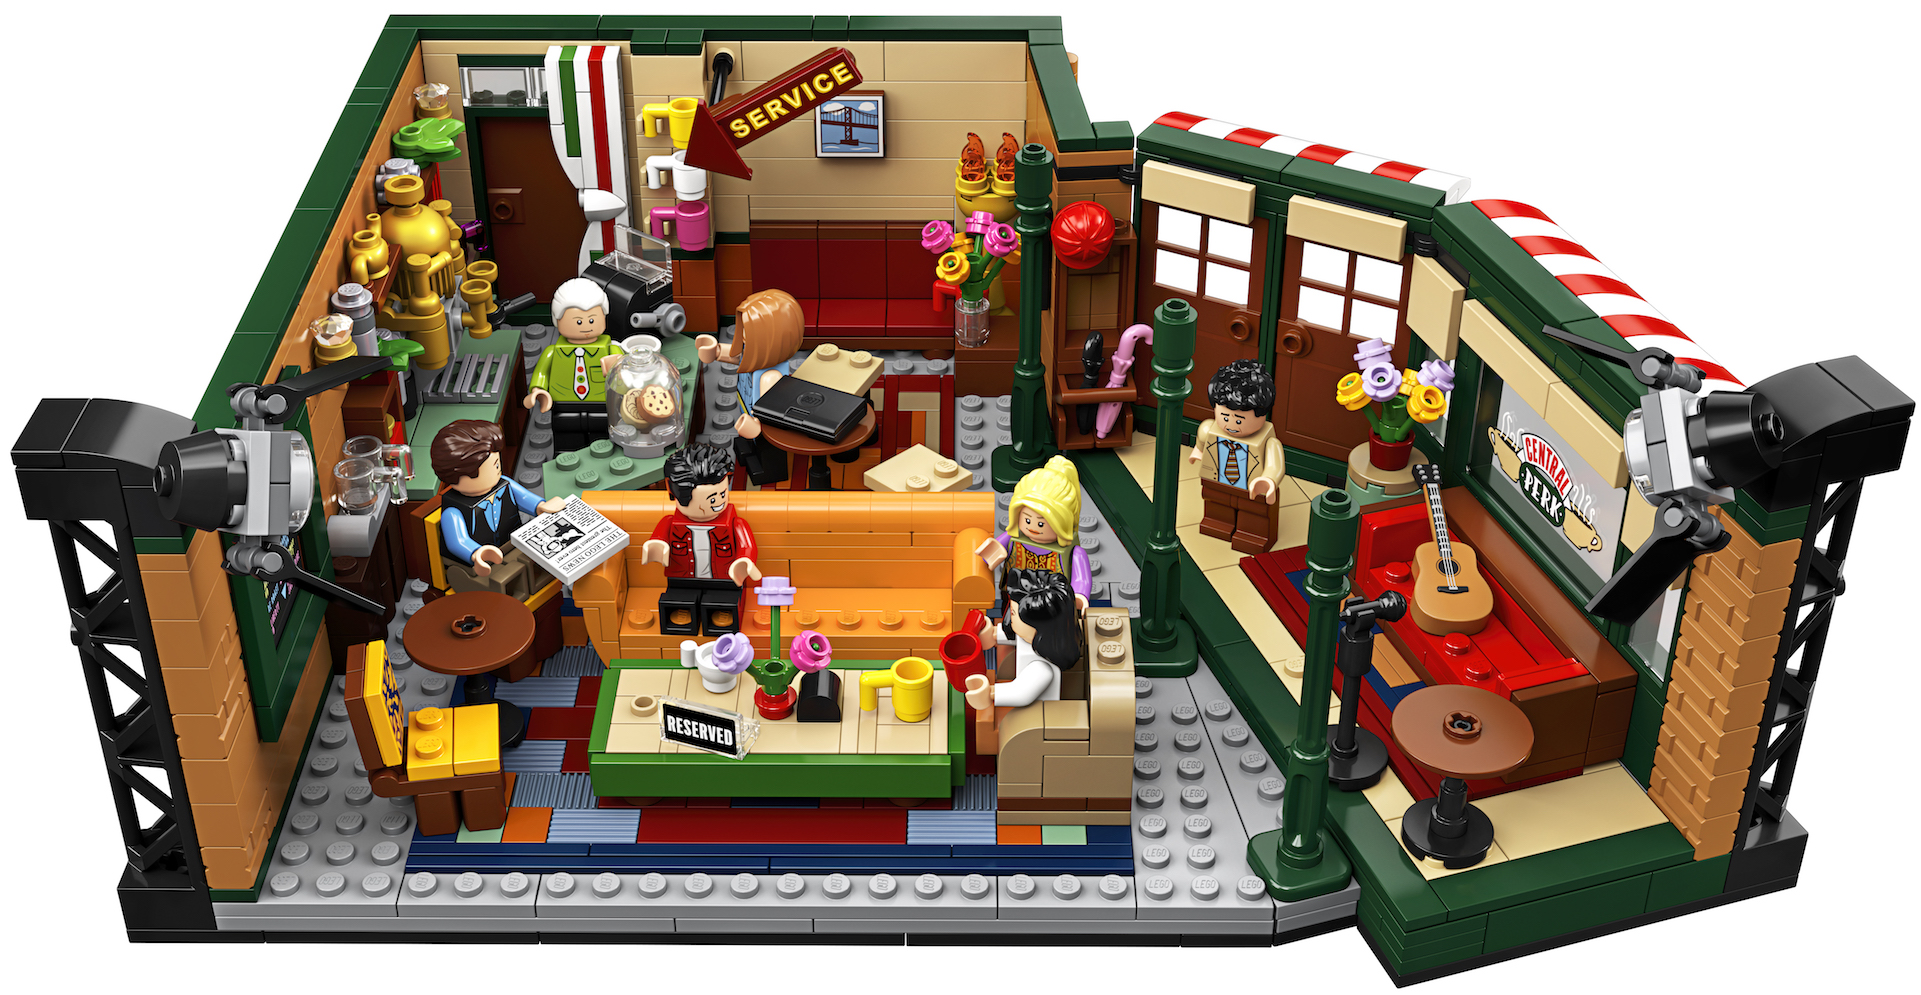 Lego celebrates the 25th anniversary of 'Friends' with